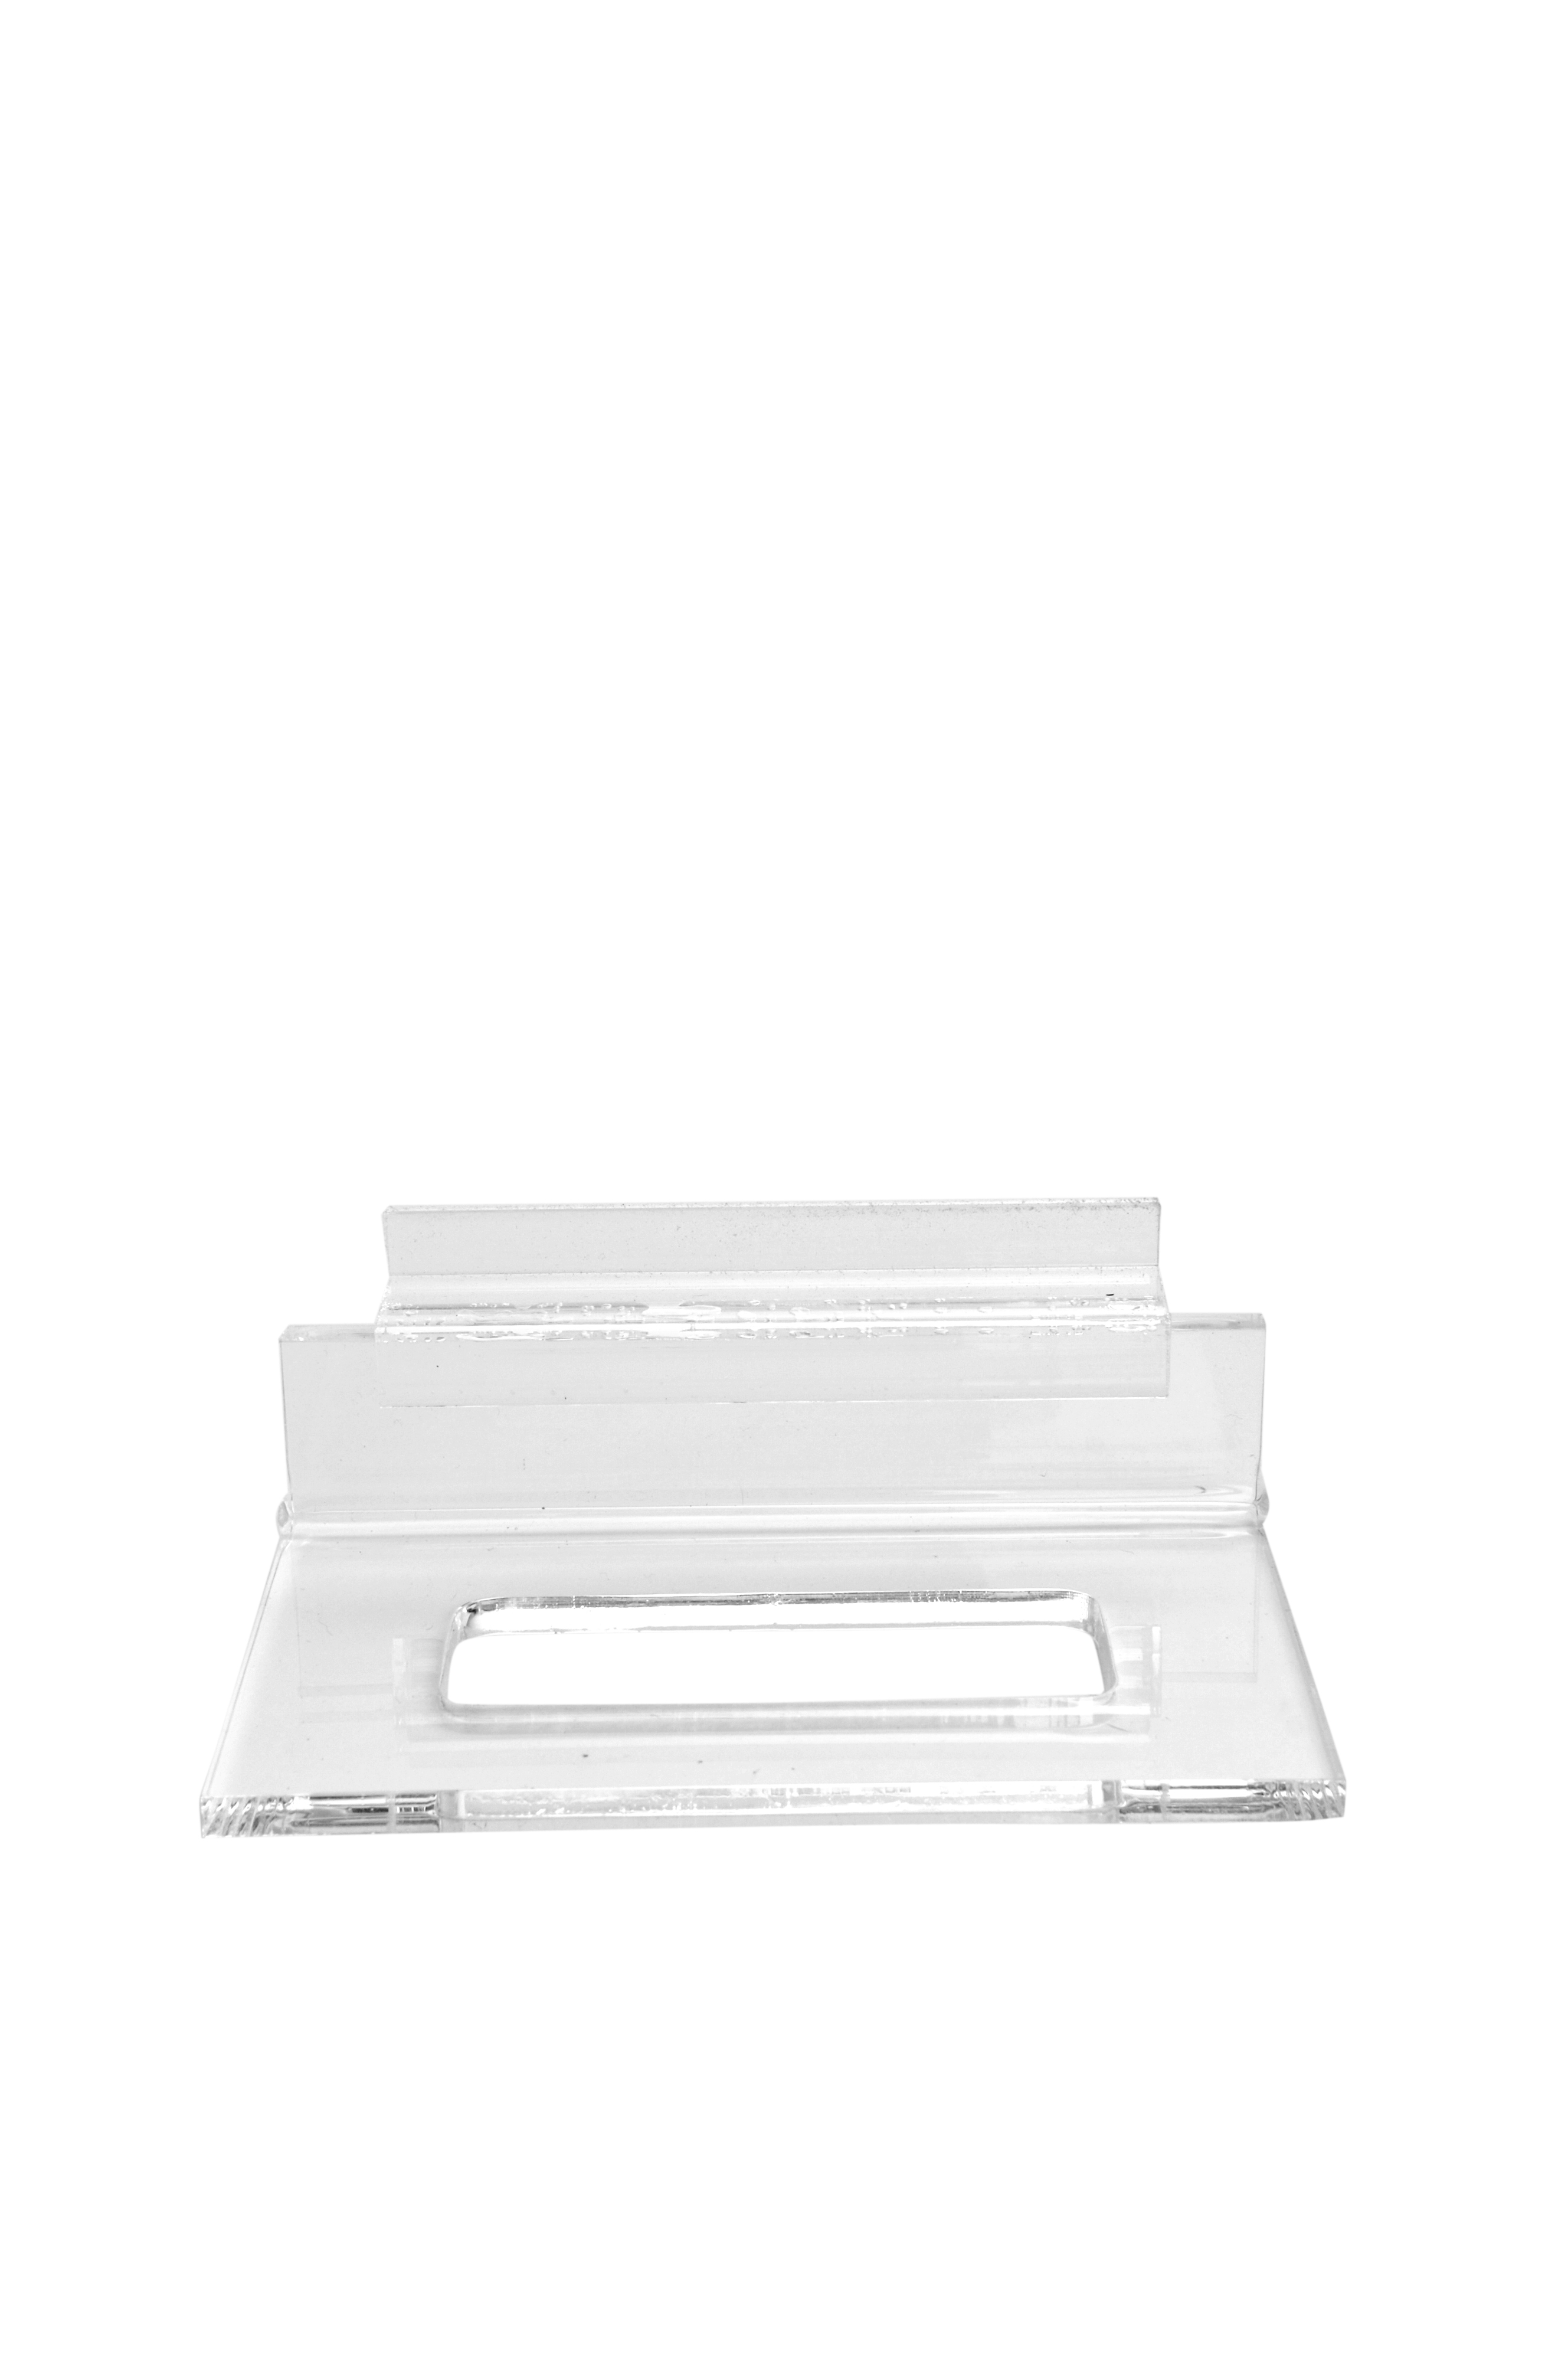 9a5683ee6c4c Clear Acrylic Single Plate Display Stand for Slatwall br  br (Item  764)